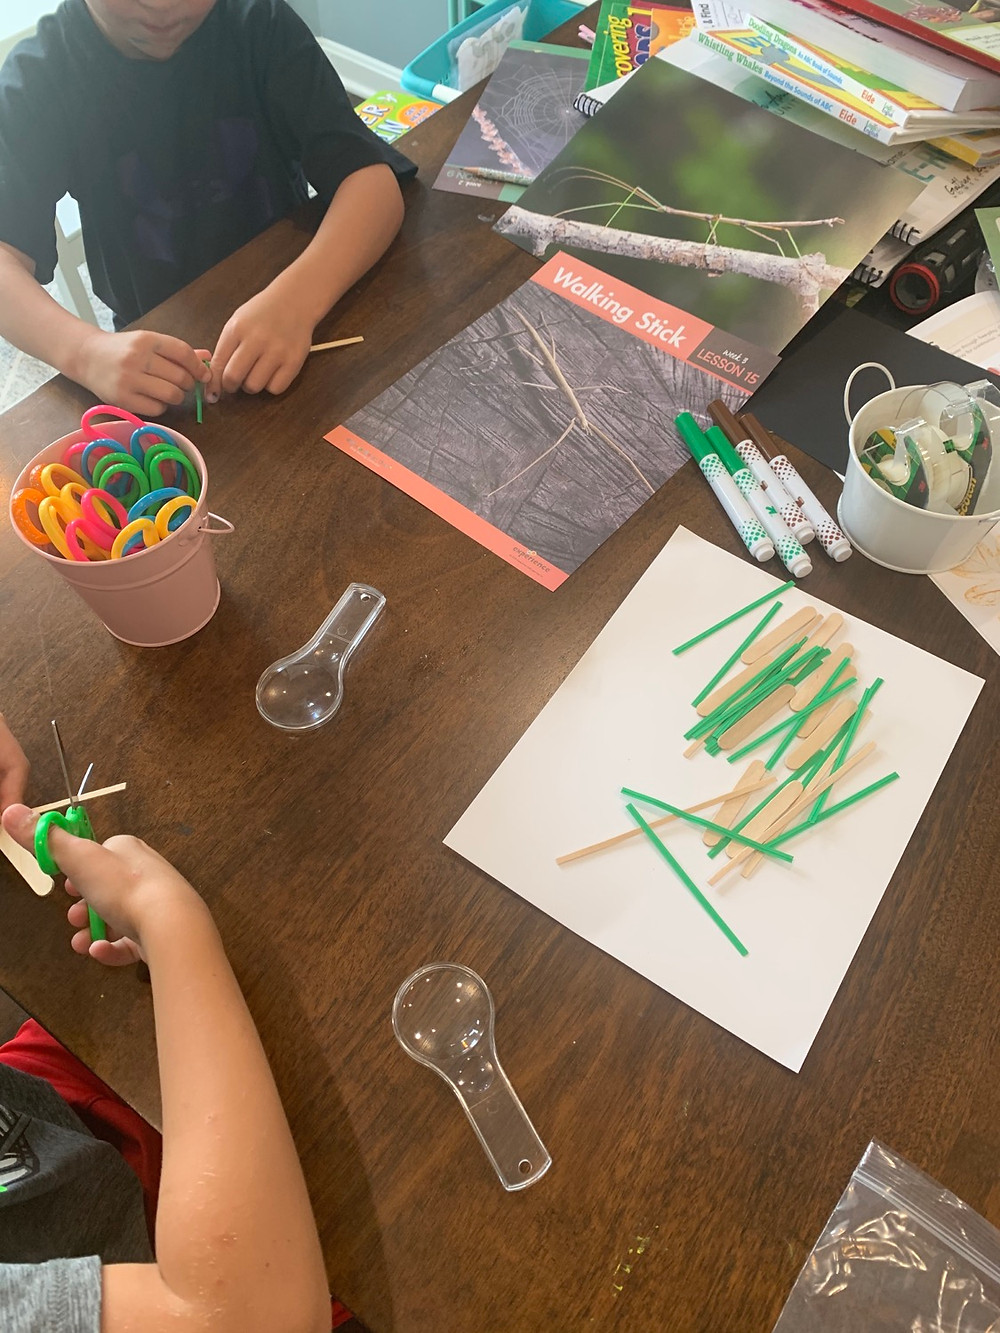 Elementary science curriculum and crafts